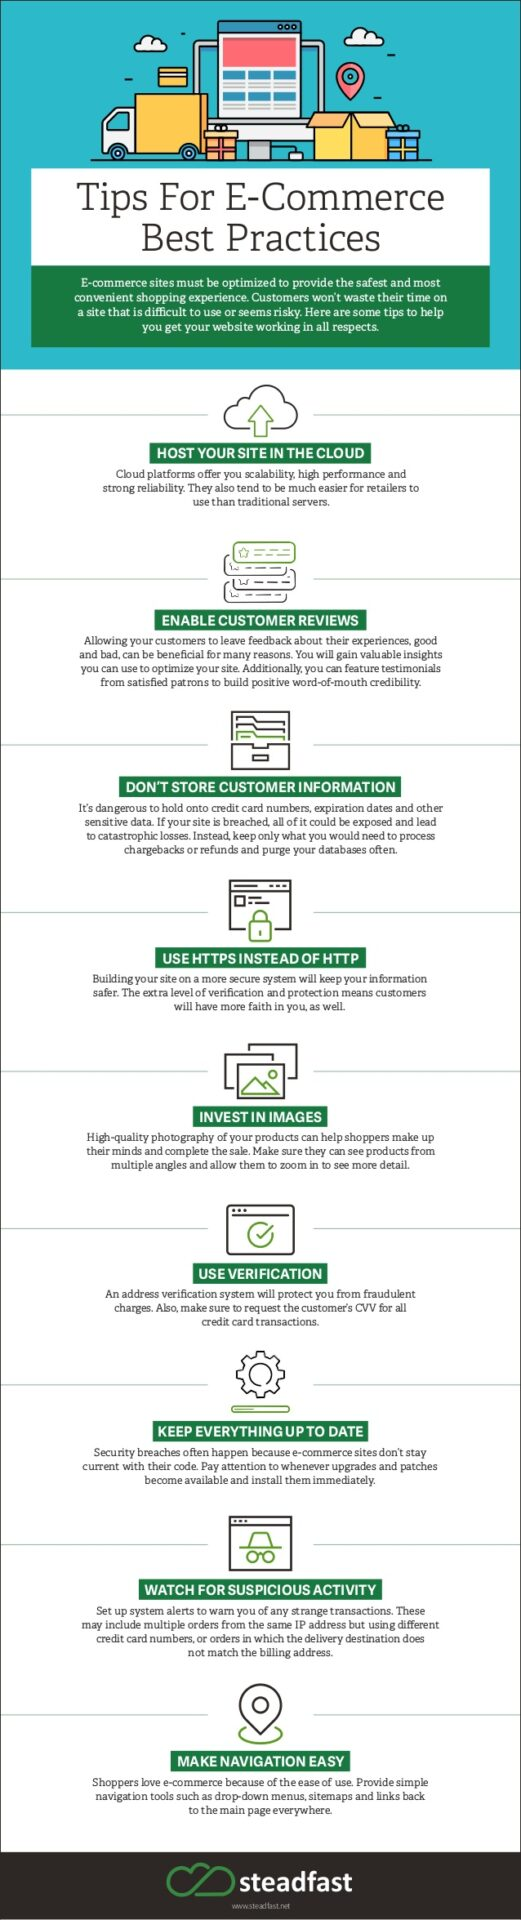 e-commerce best practices infographic